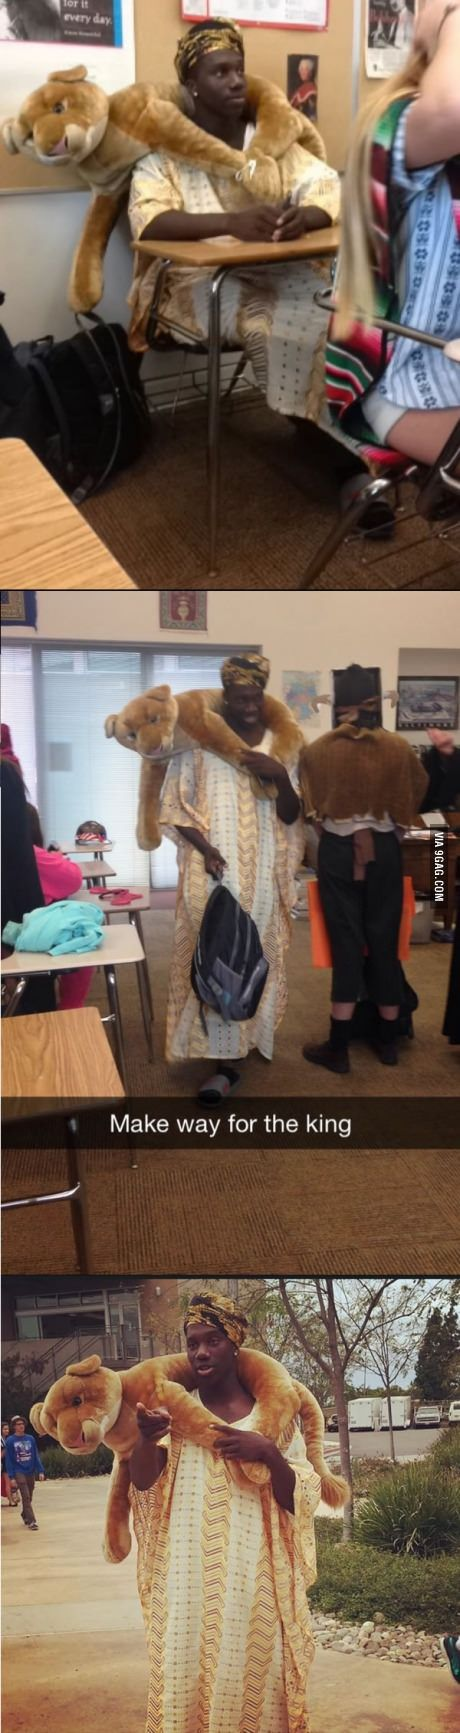 So this guy dressed up as a Nigerian prince